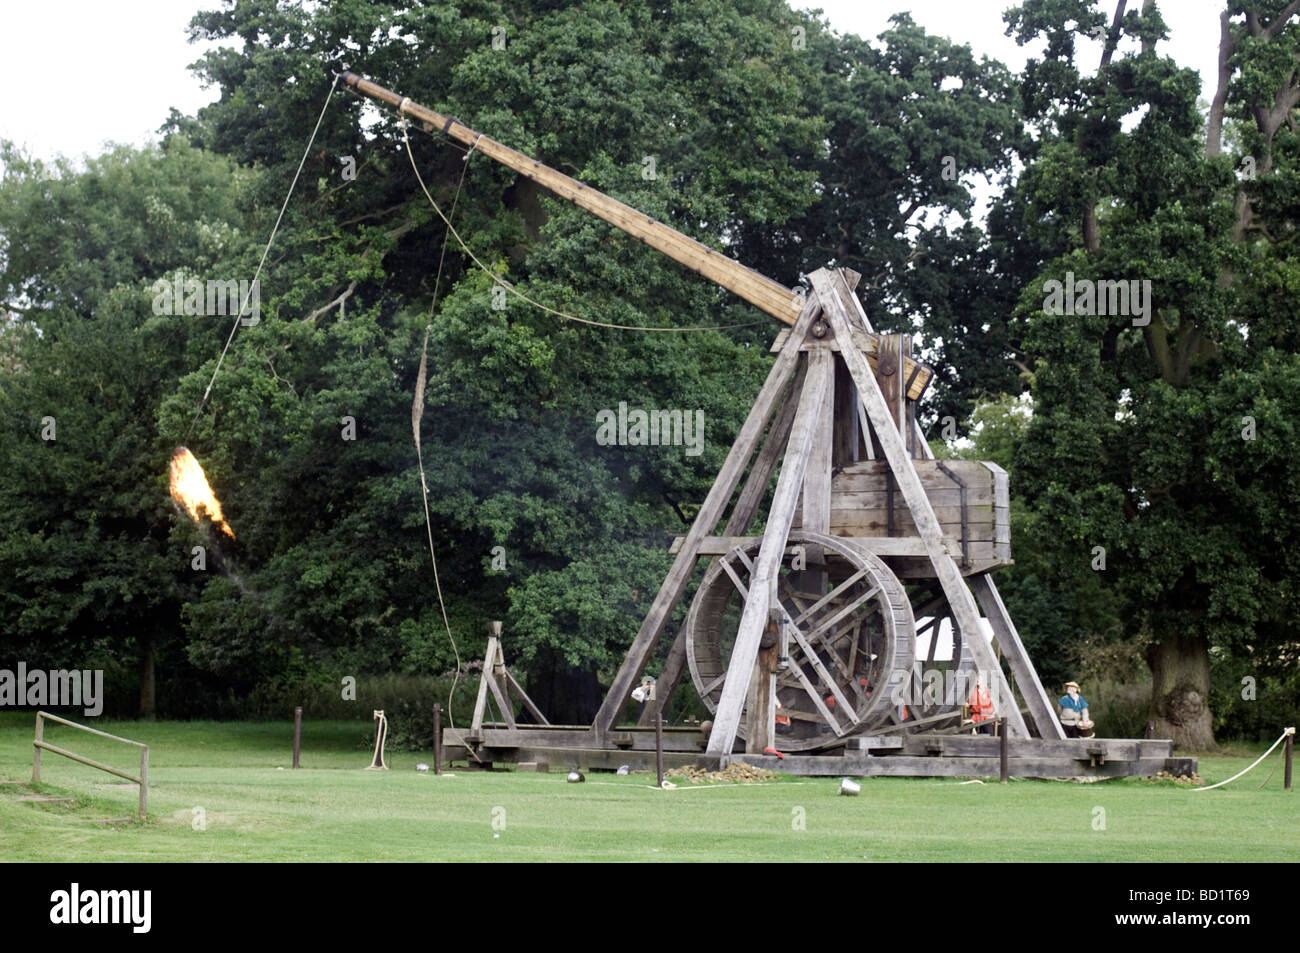 Medieval Weapon Stock Photos Images Alamy Diagram Of Our Trebuchet Warwick Castle Is Home To One The Worlds Largest England